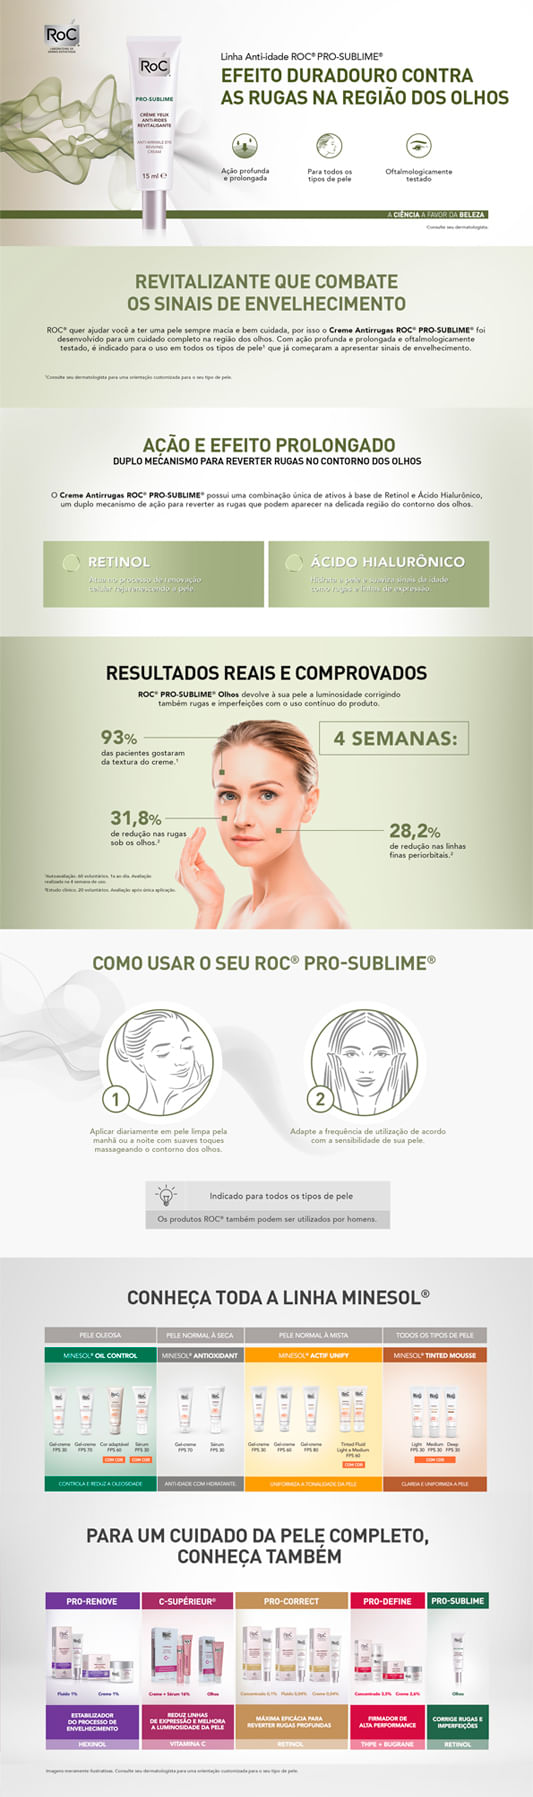 Pro-Sublime Anti-Wrinkle Eye Roc - Tratamento Facial Antirrugas